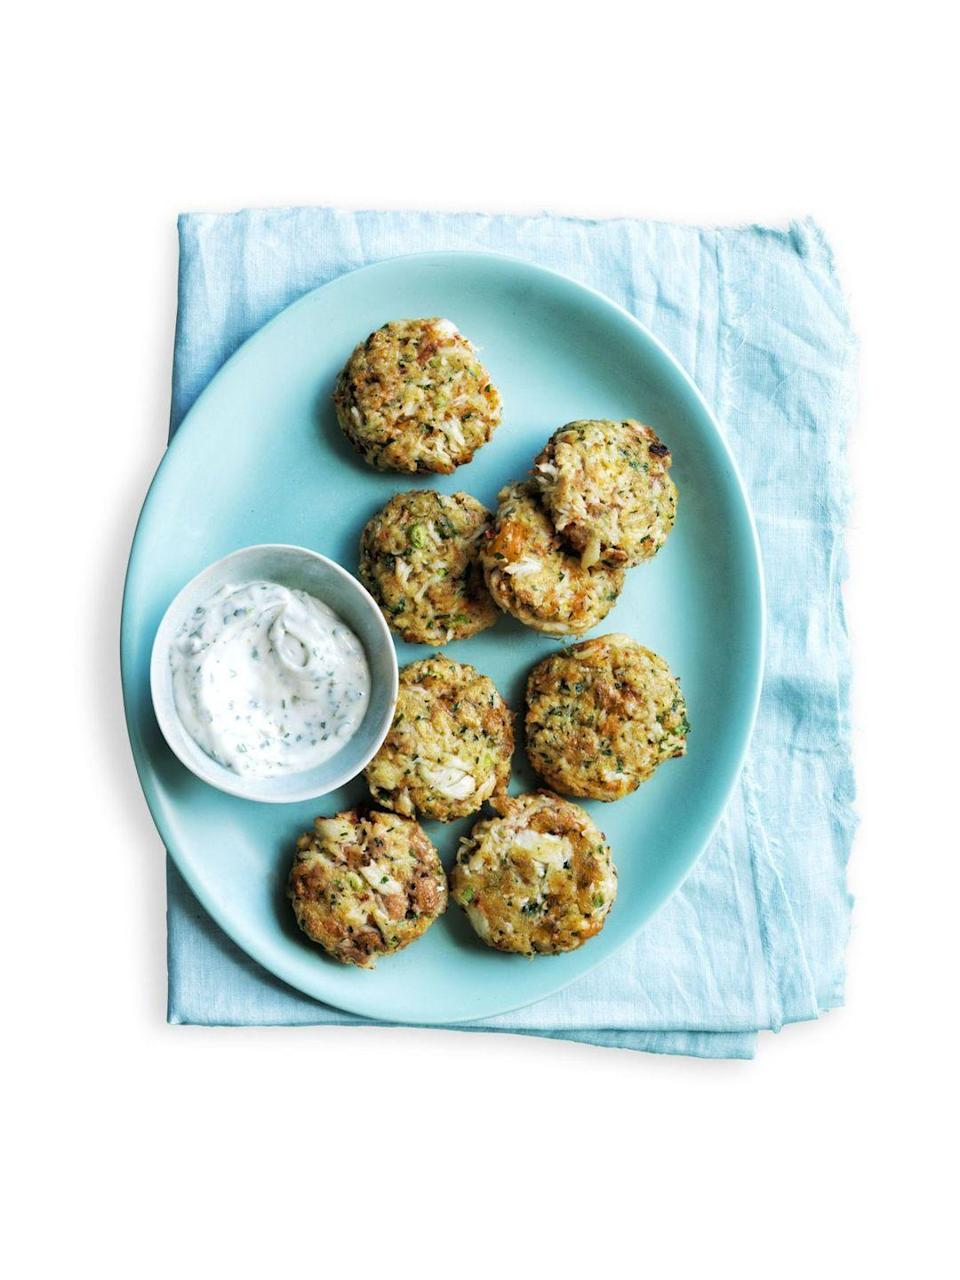 """<p>Crab cakes may seem complicated, but this straightforward recipe will have you whipping them up in no time. Throw these tangy cakes on top of some fresh greens, and you've got yourself a mighty fine dinner.</p><p><em><a href=""""https://www.womansday.com/food-recipes/food-drinks/recipes/a54836/zesty-mini-crab-cakes-recipe/"""" rel=""""nofollow noopener"""" target=""""_blank"""" data-ylk=""""slk:Get the Zesty Mini Crab Cakes recipe."""" class=""""link rapid-noclick-resp"""">Get the Zesty Mini Crab Cakes recipe.</a></em></p>"""